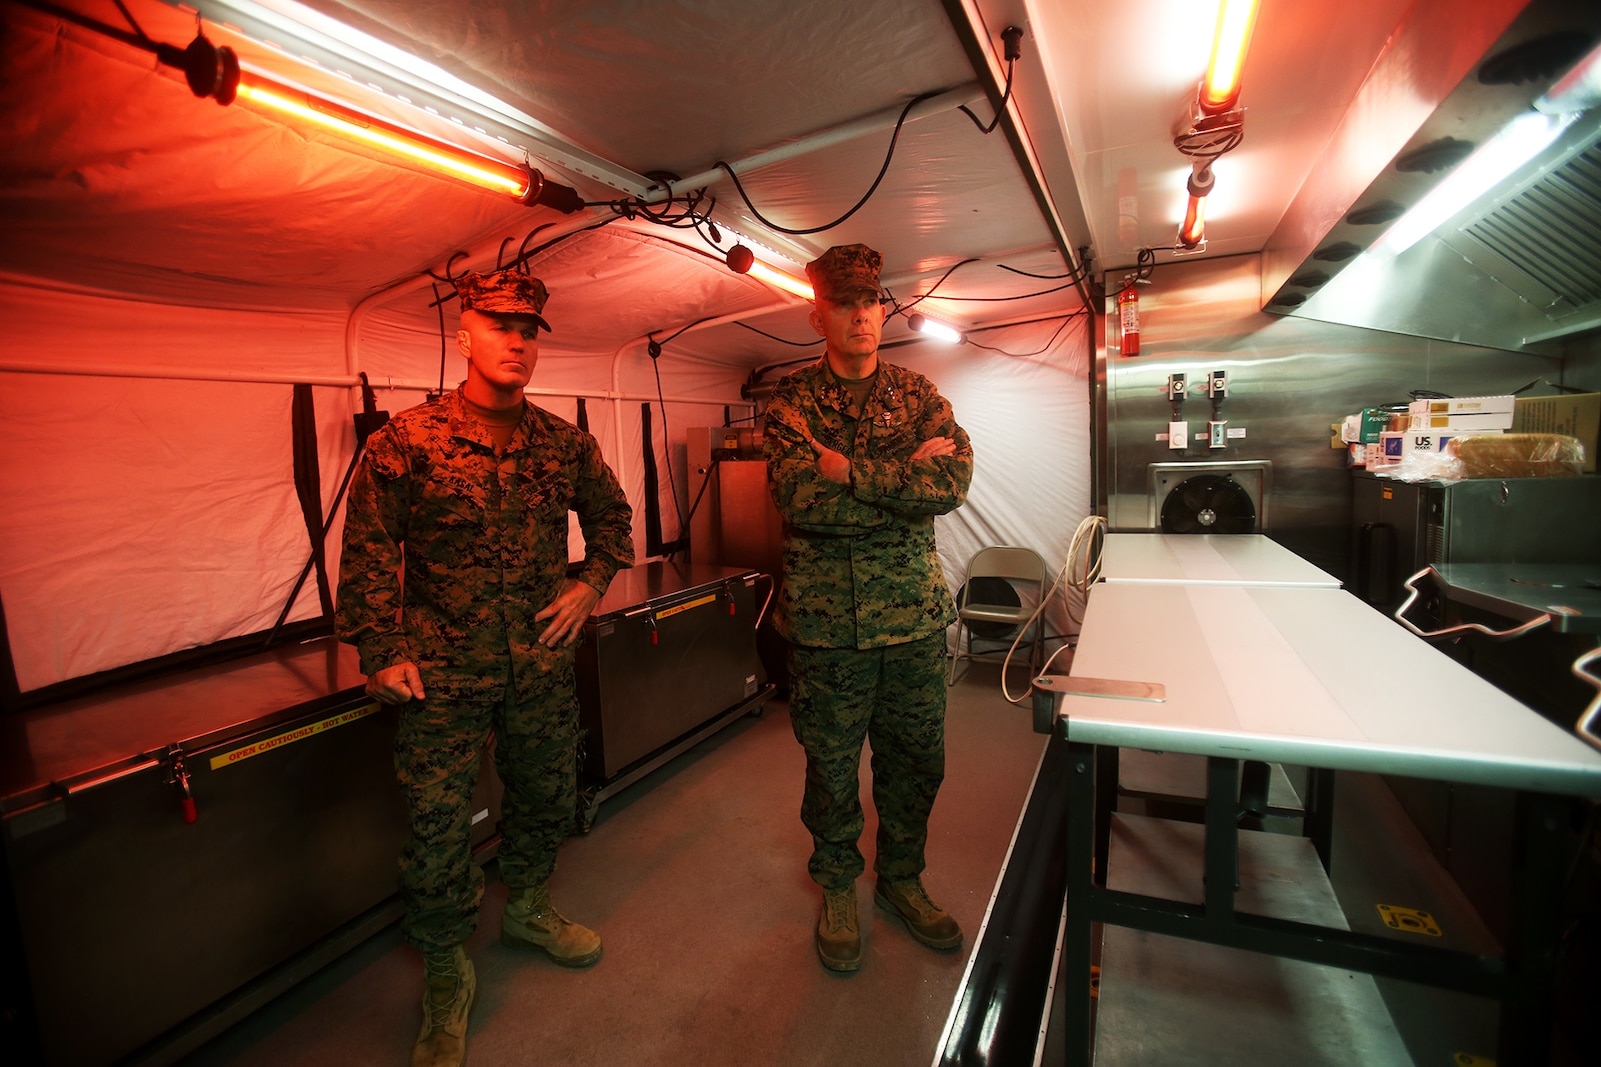 U.S. Marines Lt. Gen. David H. Berger and Sgt. Maj. Bradley Kasal learn about the expeditionary field kitchen during a cold weather training exercise at the Mountain Warfare Training Center in Bridgeport, Calif., March 17, 2016. Berger is the commanding general and Kasal is the sergeant major of I Marine Expeditionary Force. Approximately 90 Marines with 7th Engineer Support Battalion, 1st Marine Logistics Group, served as the logistics combat element in support of 2nd Battalion, 4th Marine Regiment, 1st Marine Division, during Mountain Exercise 6-16, Feb. 24- March 26, 2016. (U.S. Marine Corps photo by Sgt. Laura Gauna/released)